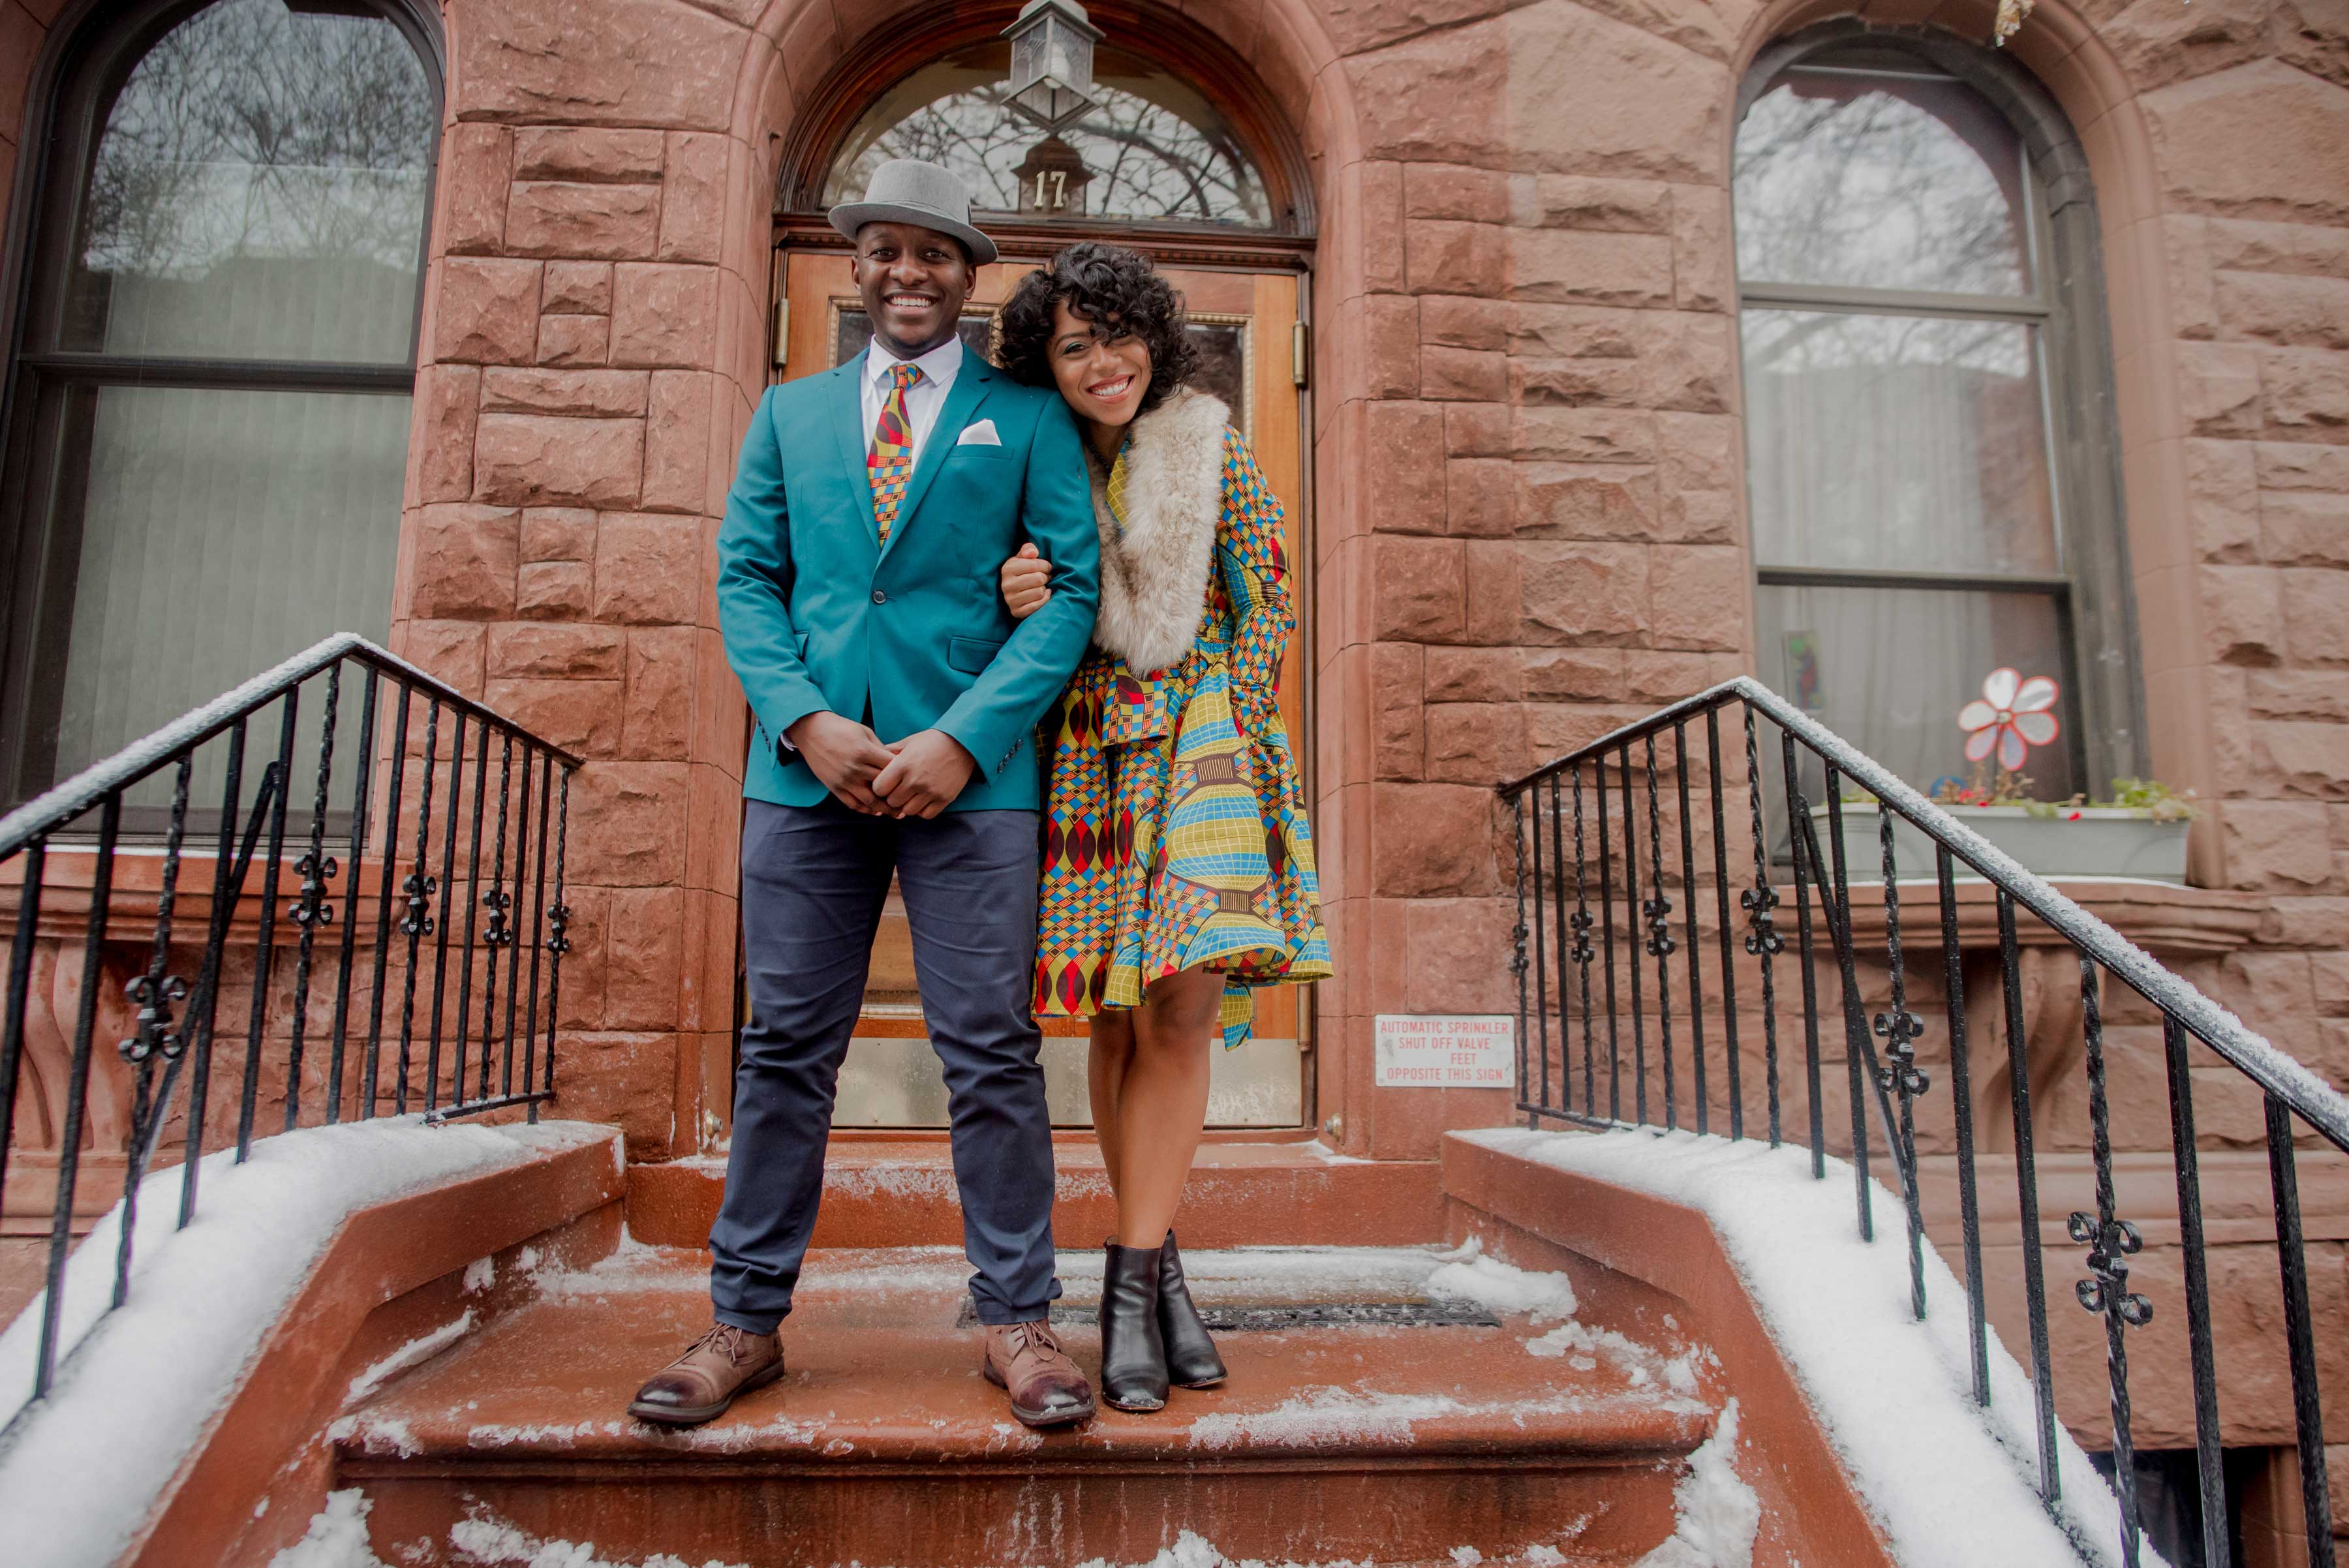 New York City engagement session photos engaged couple smiling New York City brownstone